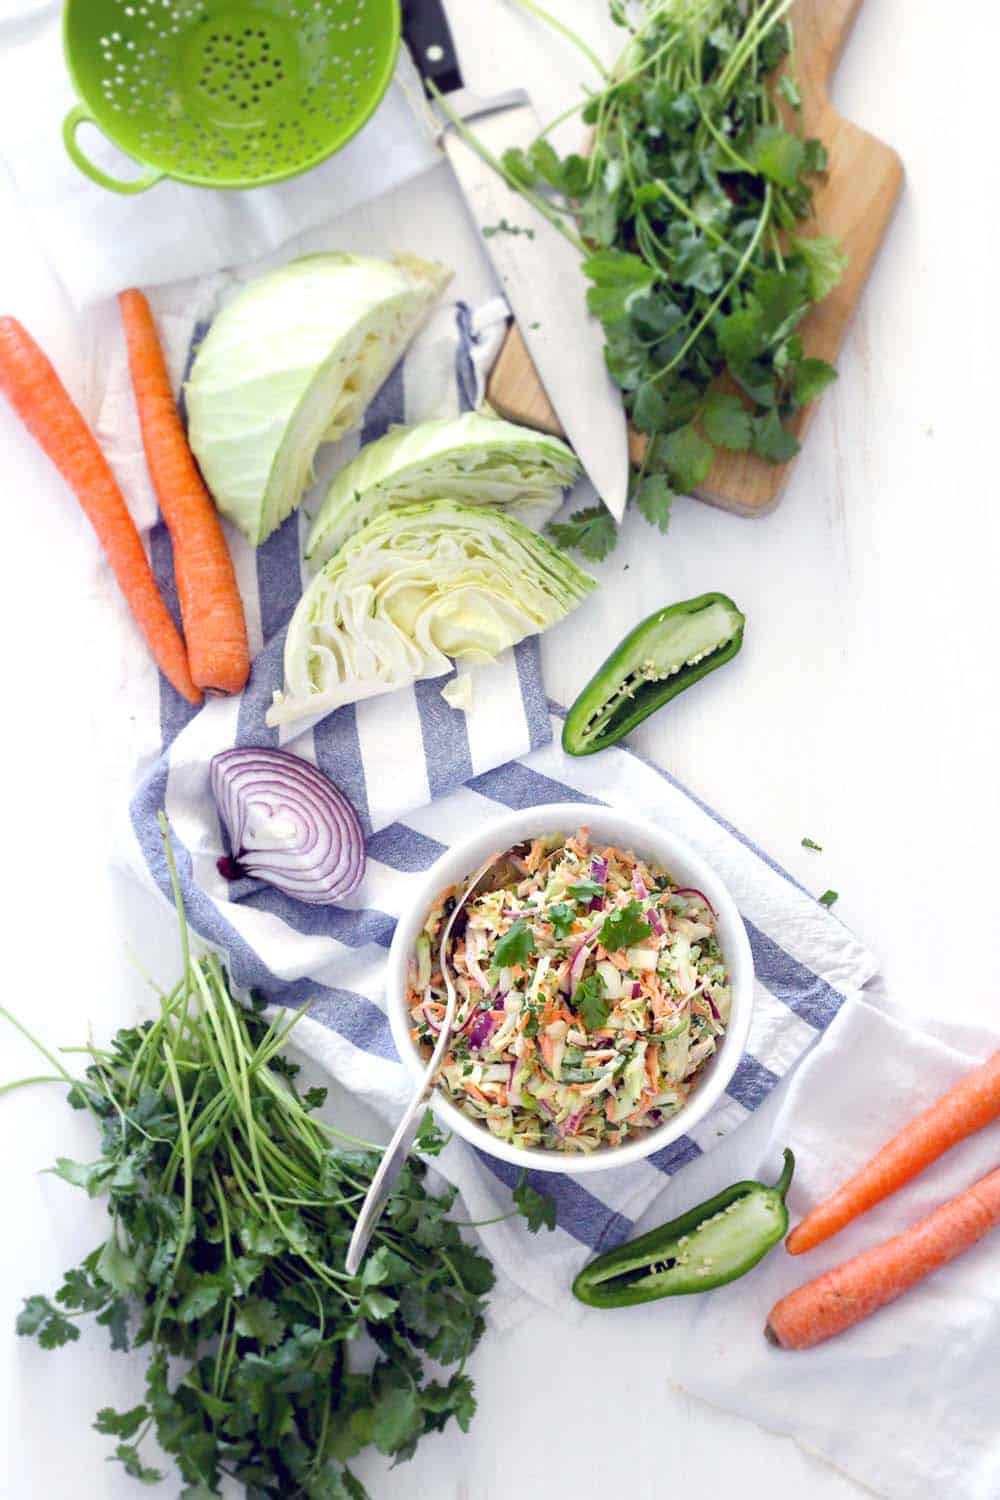 This easy, delicious recipe for Spicy Jalapeno Cilantro Slaw is great as a side, or on top of your favorite pulled pork sandwiches or fish tacos! Vegetarian, vegan optional, low carb, and paleo compliant.